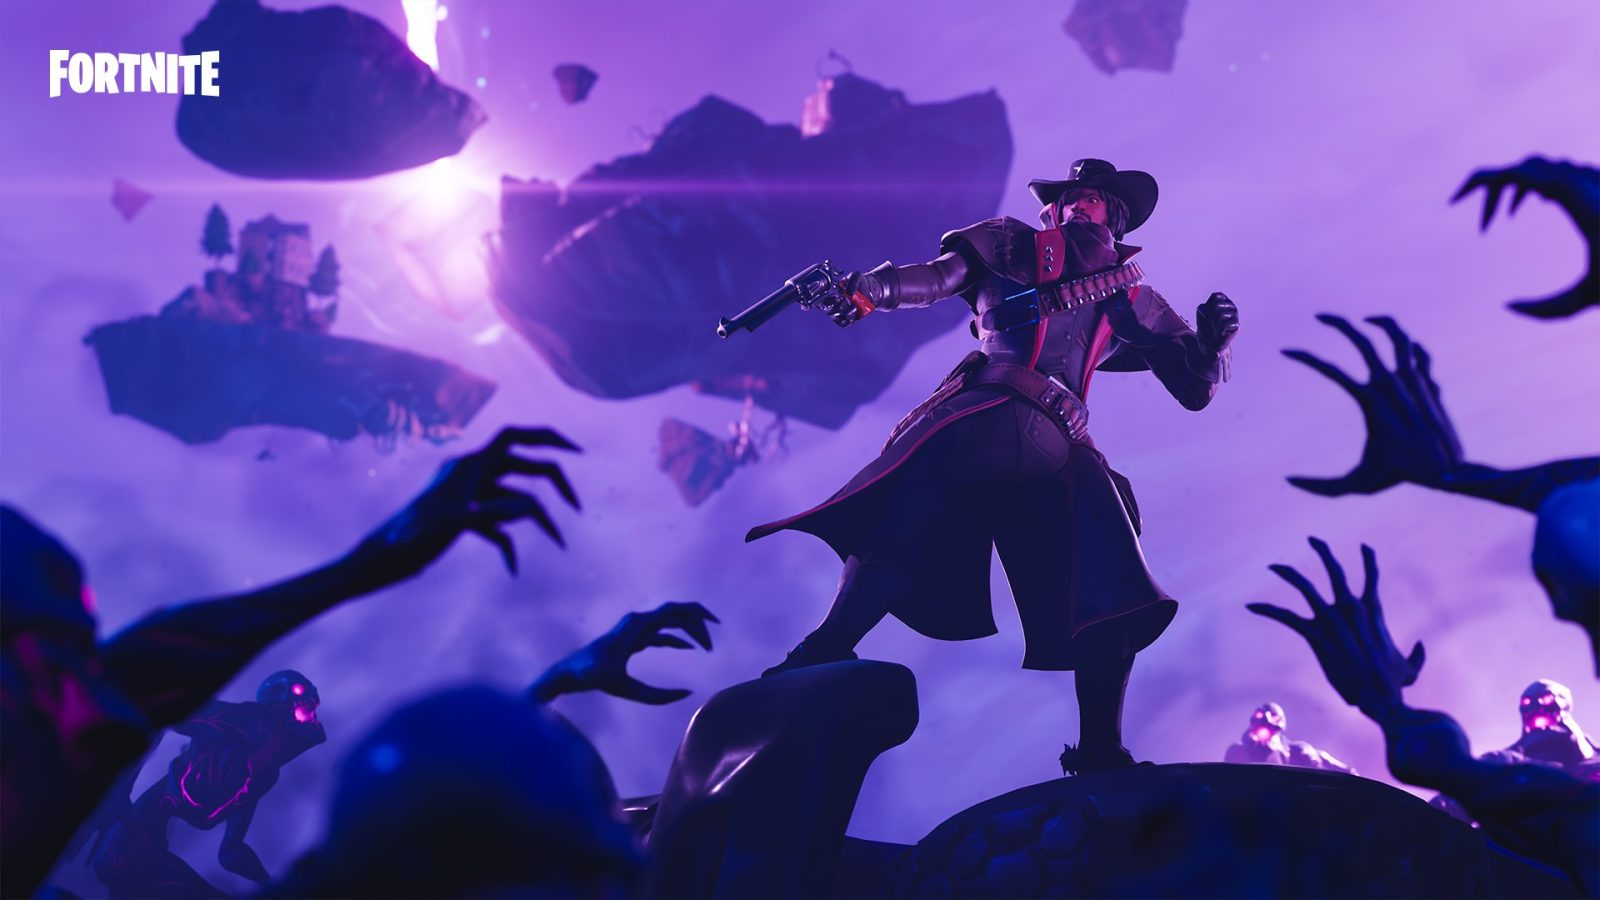 Fortnite For Ios Updated With Fortnitemares Halloween Content